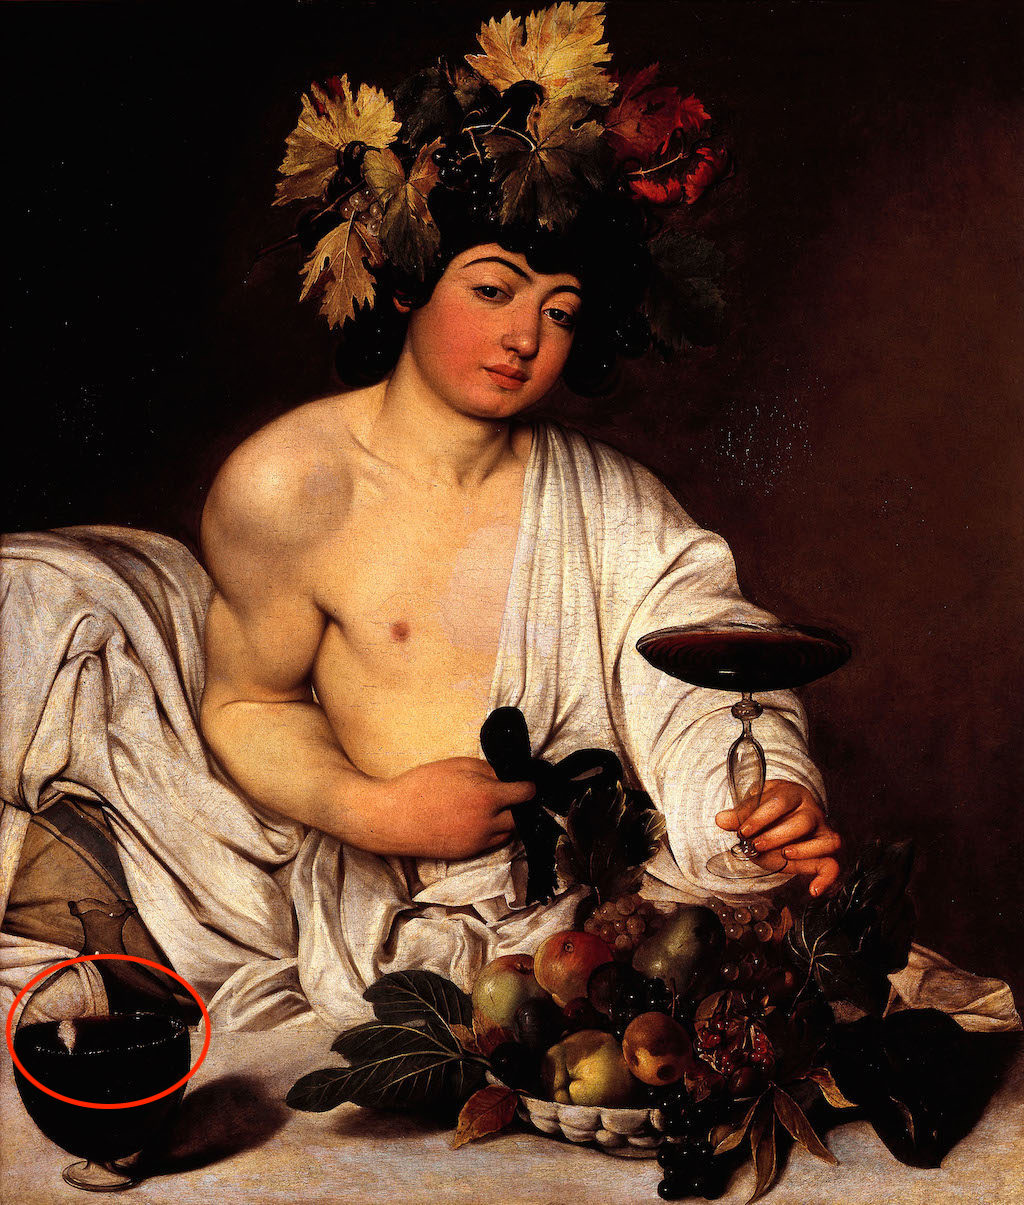 DNGT82 Caravaggio, The adolescent Bacchus 1595-1597 Oil on canvas. Uffizi Gallery, Florence, Italy.